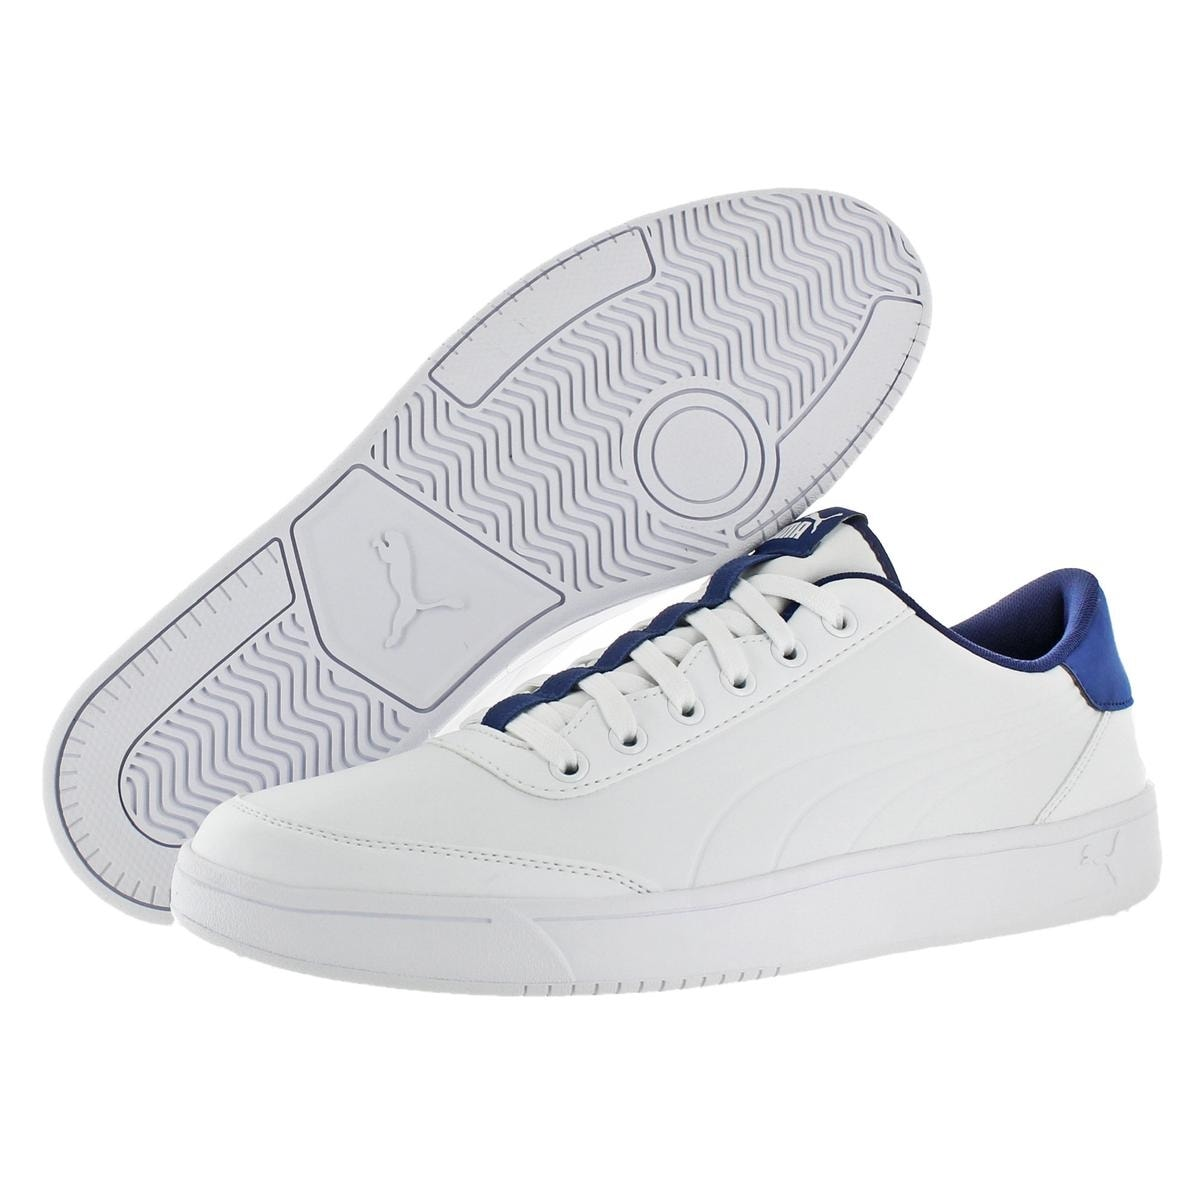 b729da81d78 Shop Puma Mens Court Breaker L Tennis Shoes Classic Performance - Free  Shipping On Orders Over  45 - Overstock - 22727112